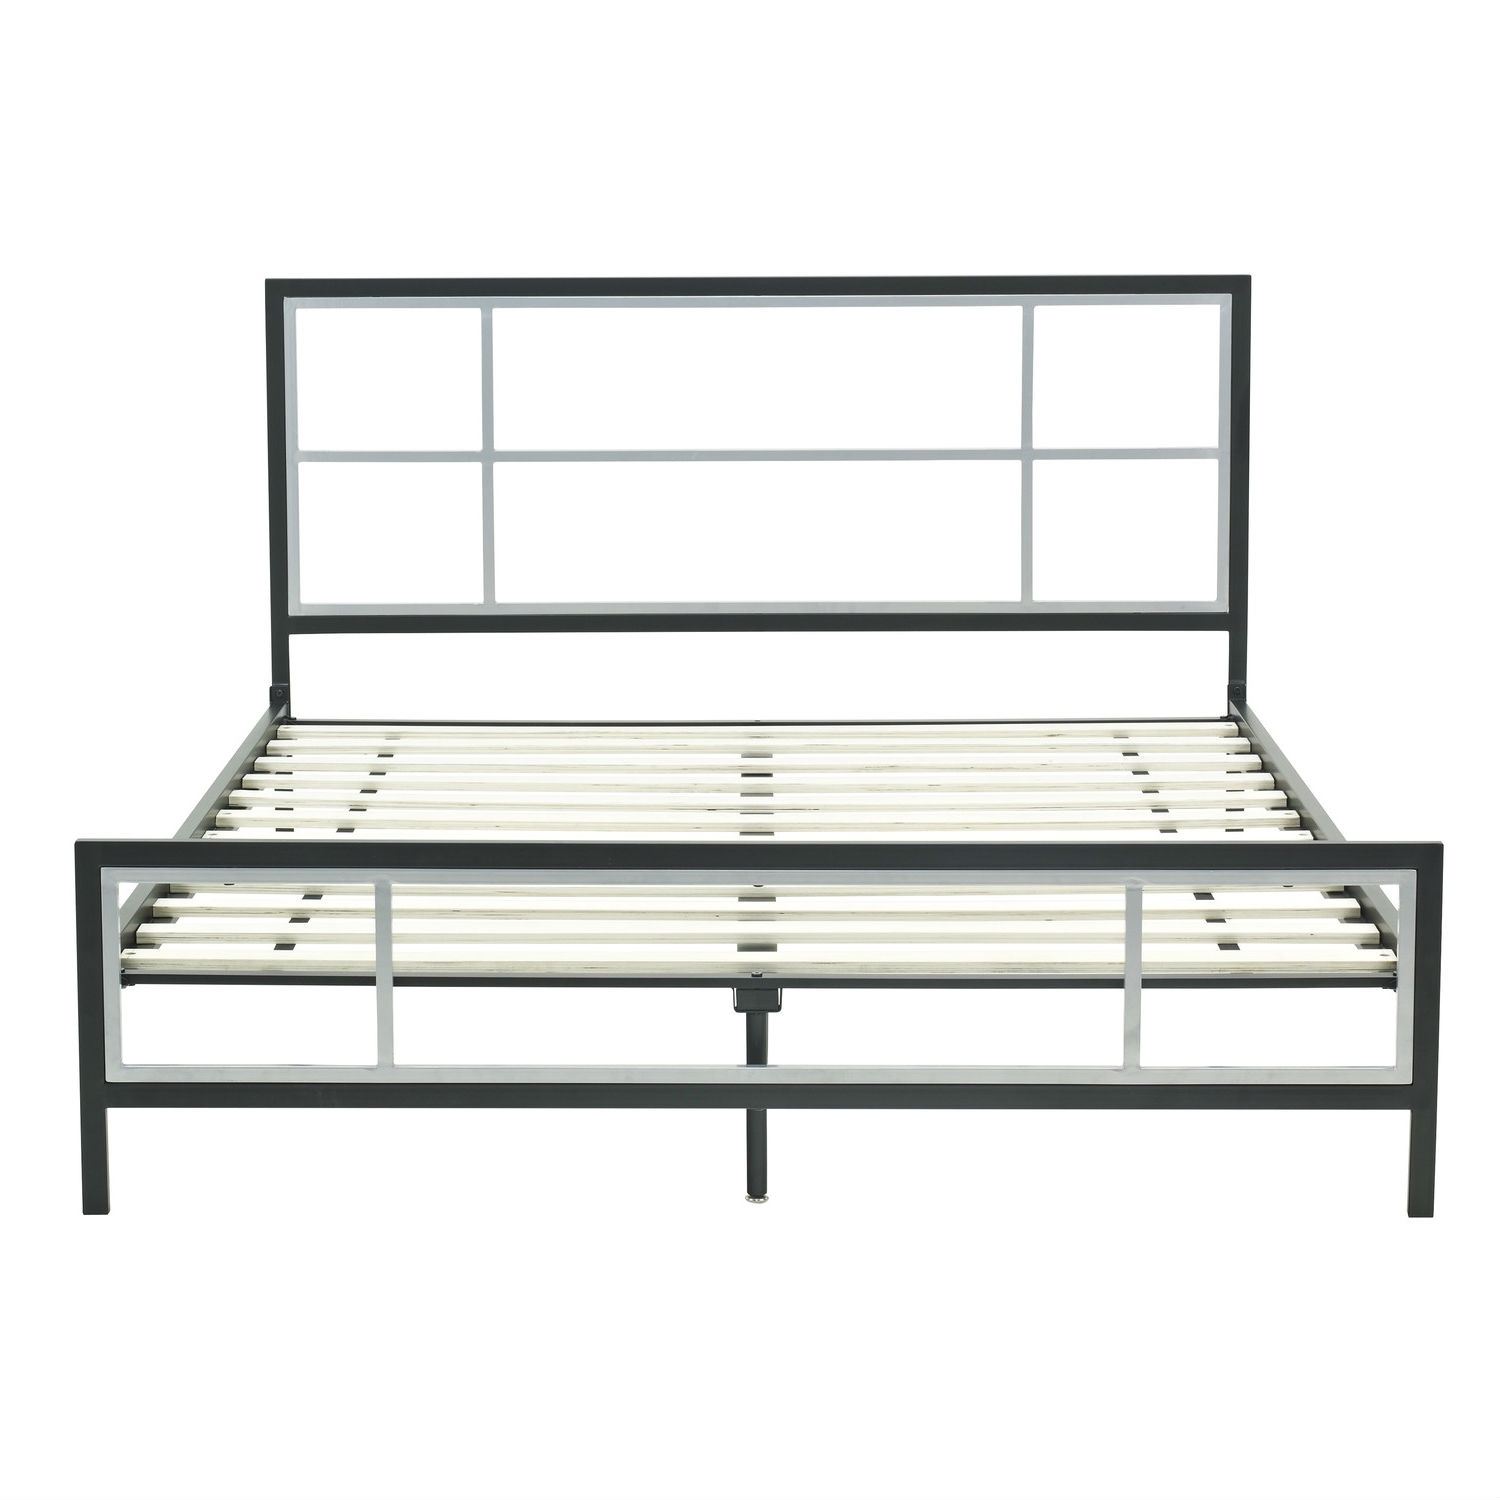 full size modern metal platform bed fame with headboard footboard and wood slats - Bed Frame For Headboard And Footboard